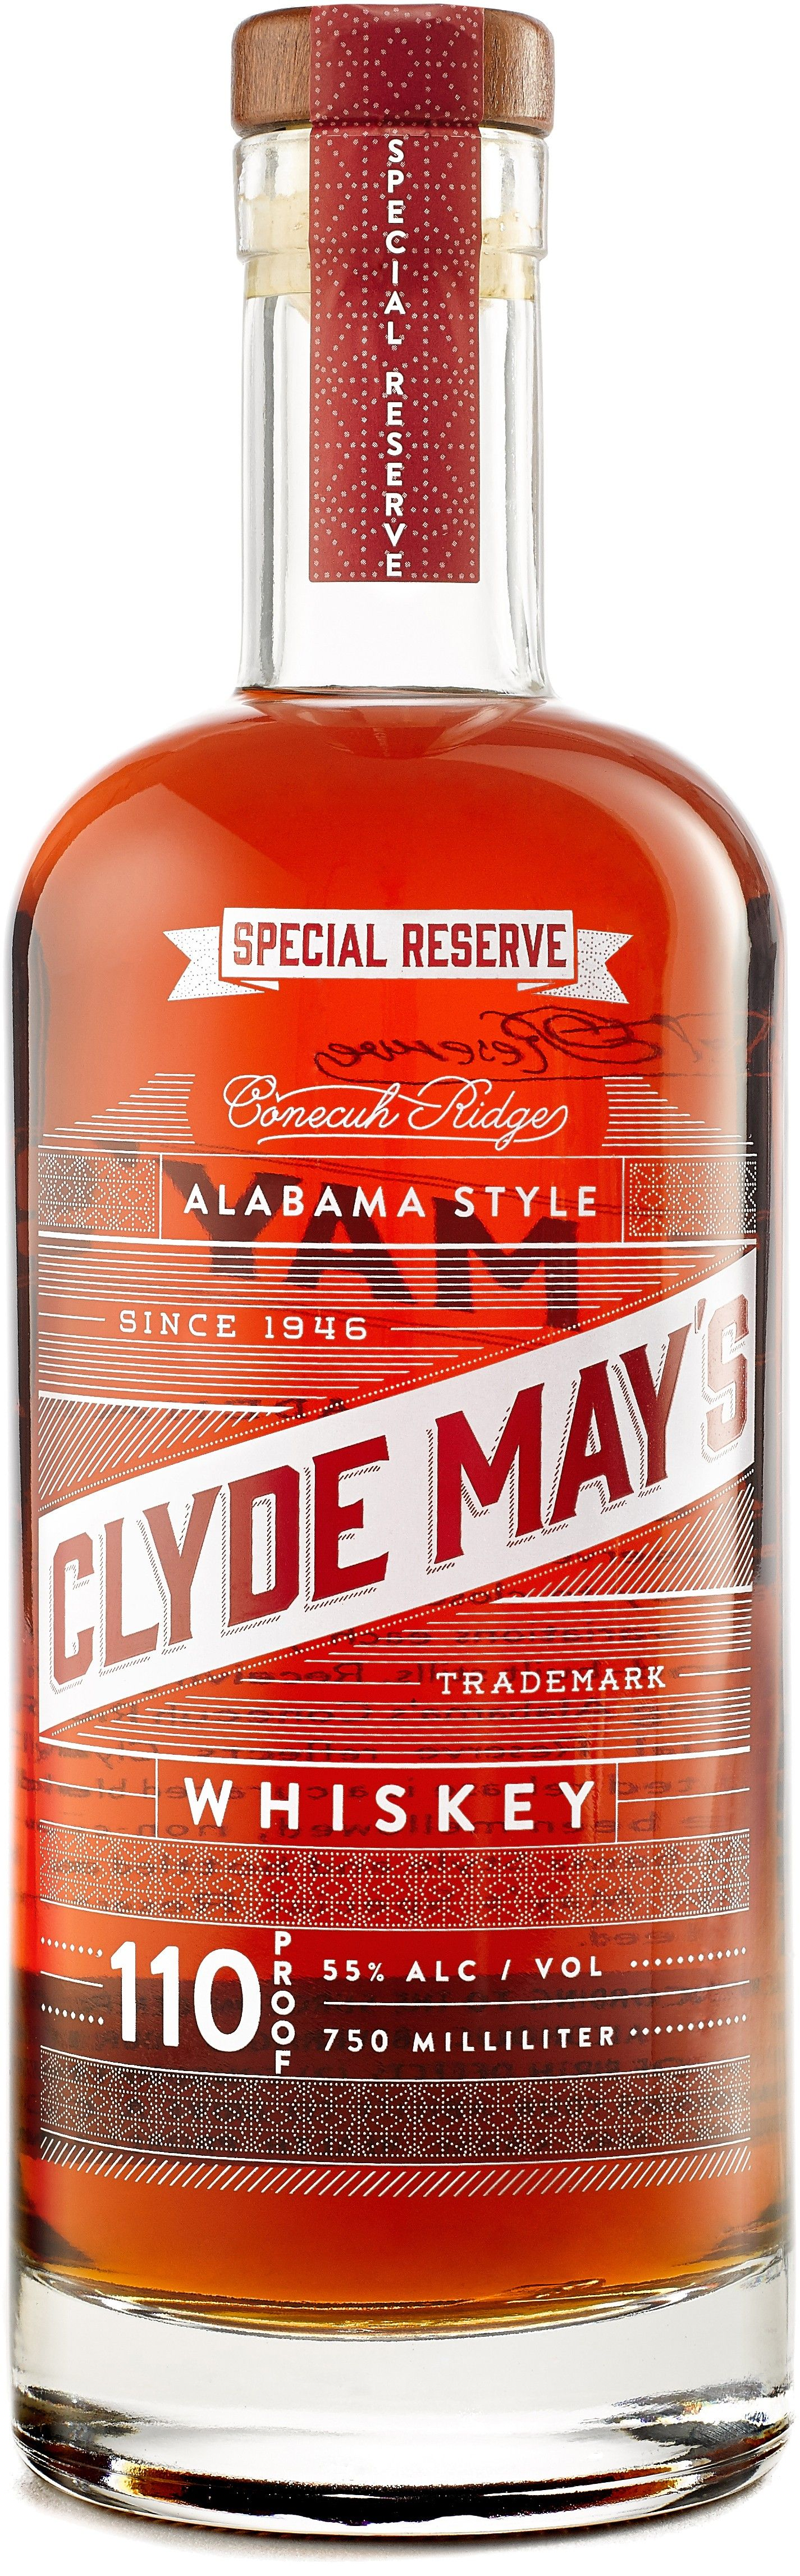 Clyde May S Special Reserve Alabama Style Whiskey Whiskey Whiskey Distillery Whiskey Brands